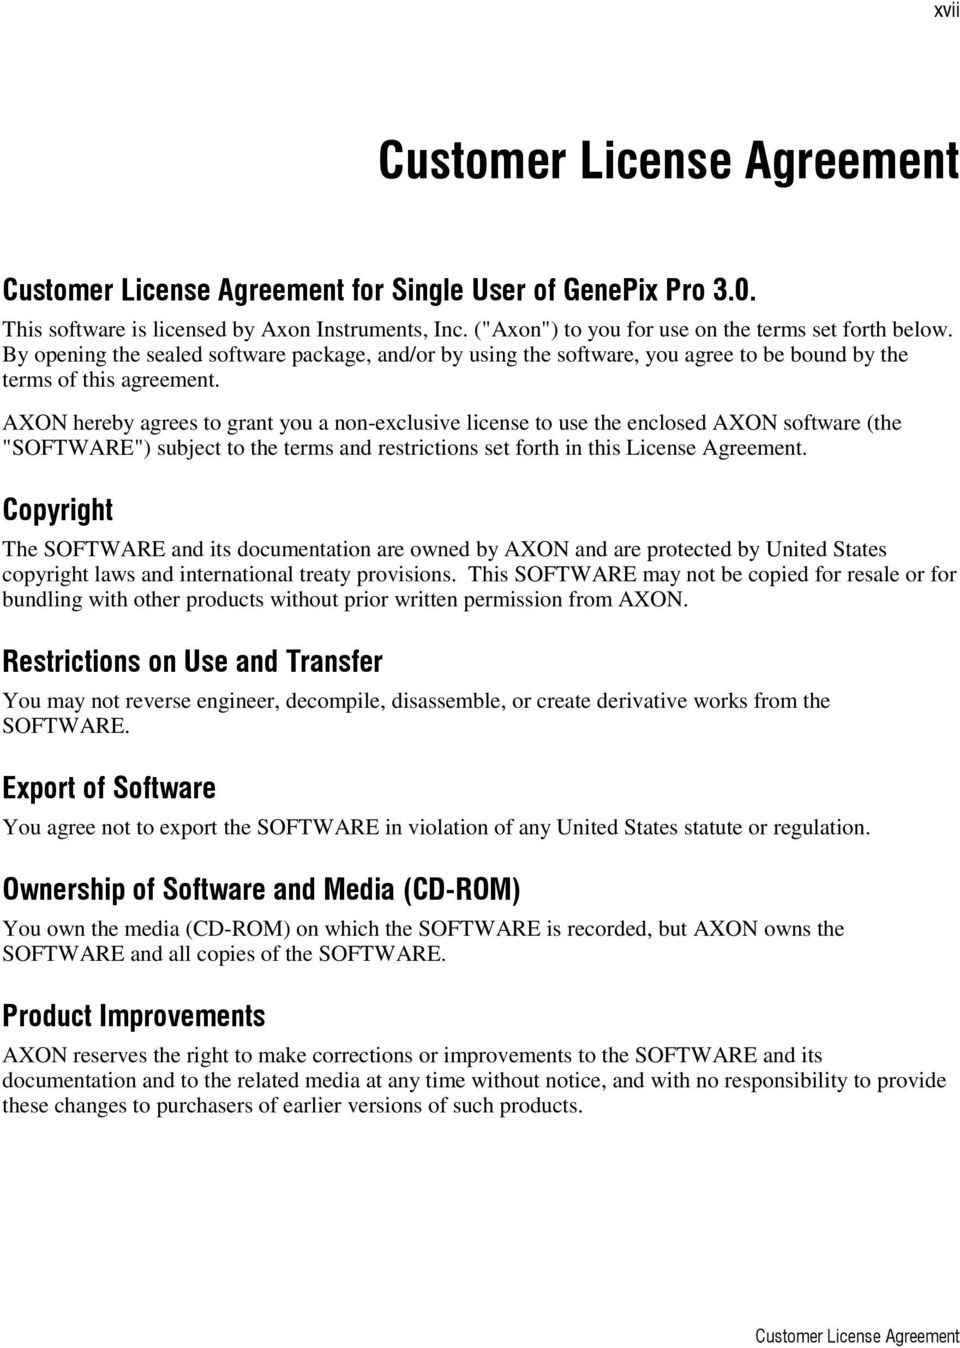 "AXON hereby agrees to grant you a non-exclusive license to use the enclosed AXON software (the ""SOFTWARE"") subject to the terms and restrictions set forth in this License Agreement."